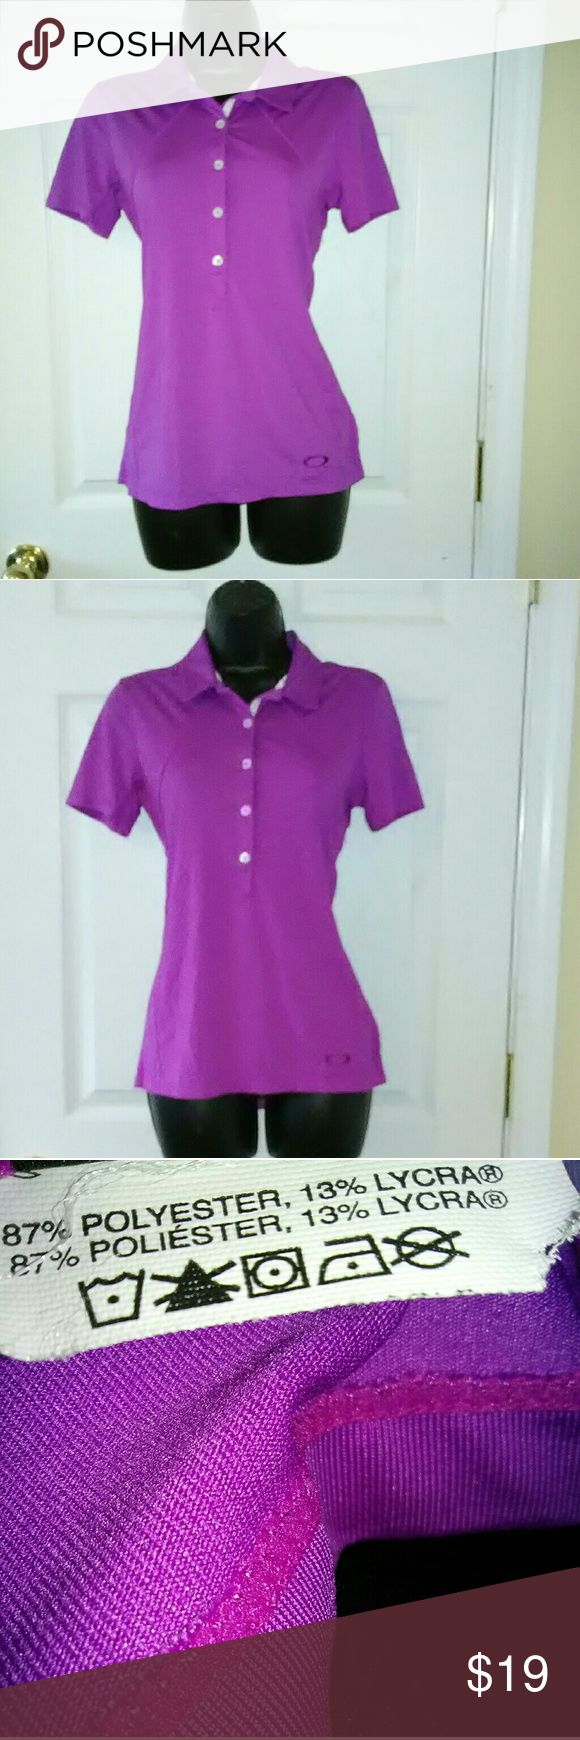 """Oakley sz small purple polo shirt Excellent used condition.  16"""" armpit to armpit  Bundle with other items for discount or make an offer! Oakley Tops"""